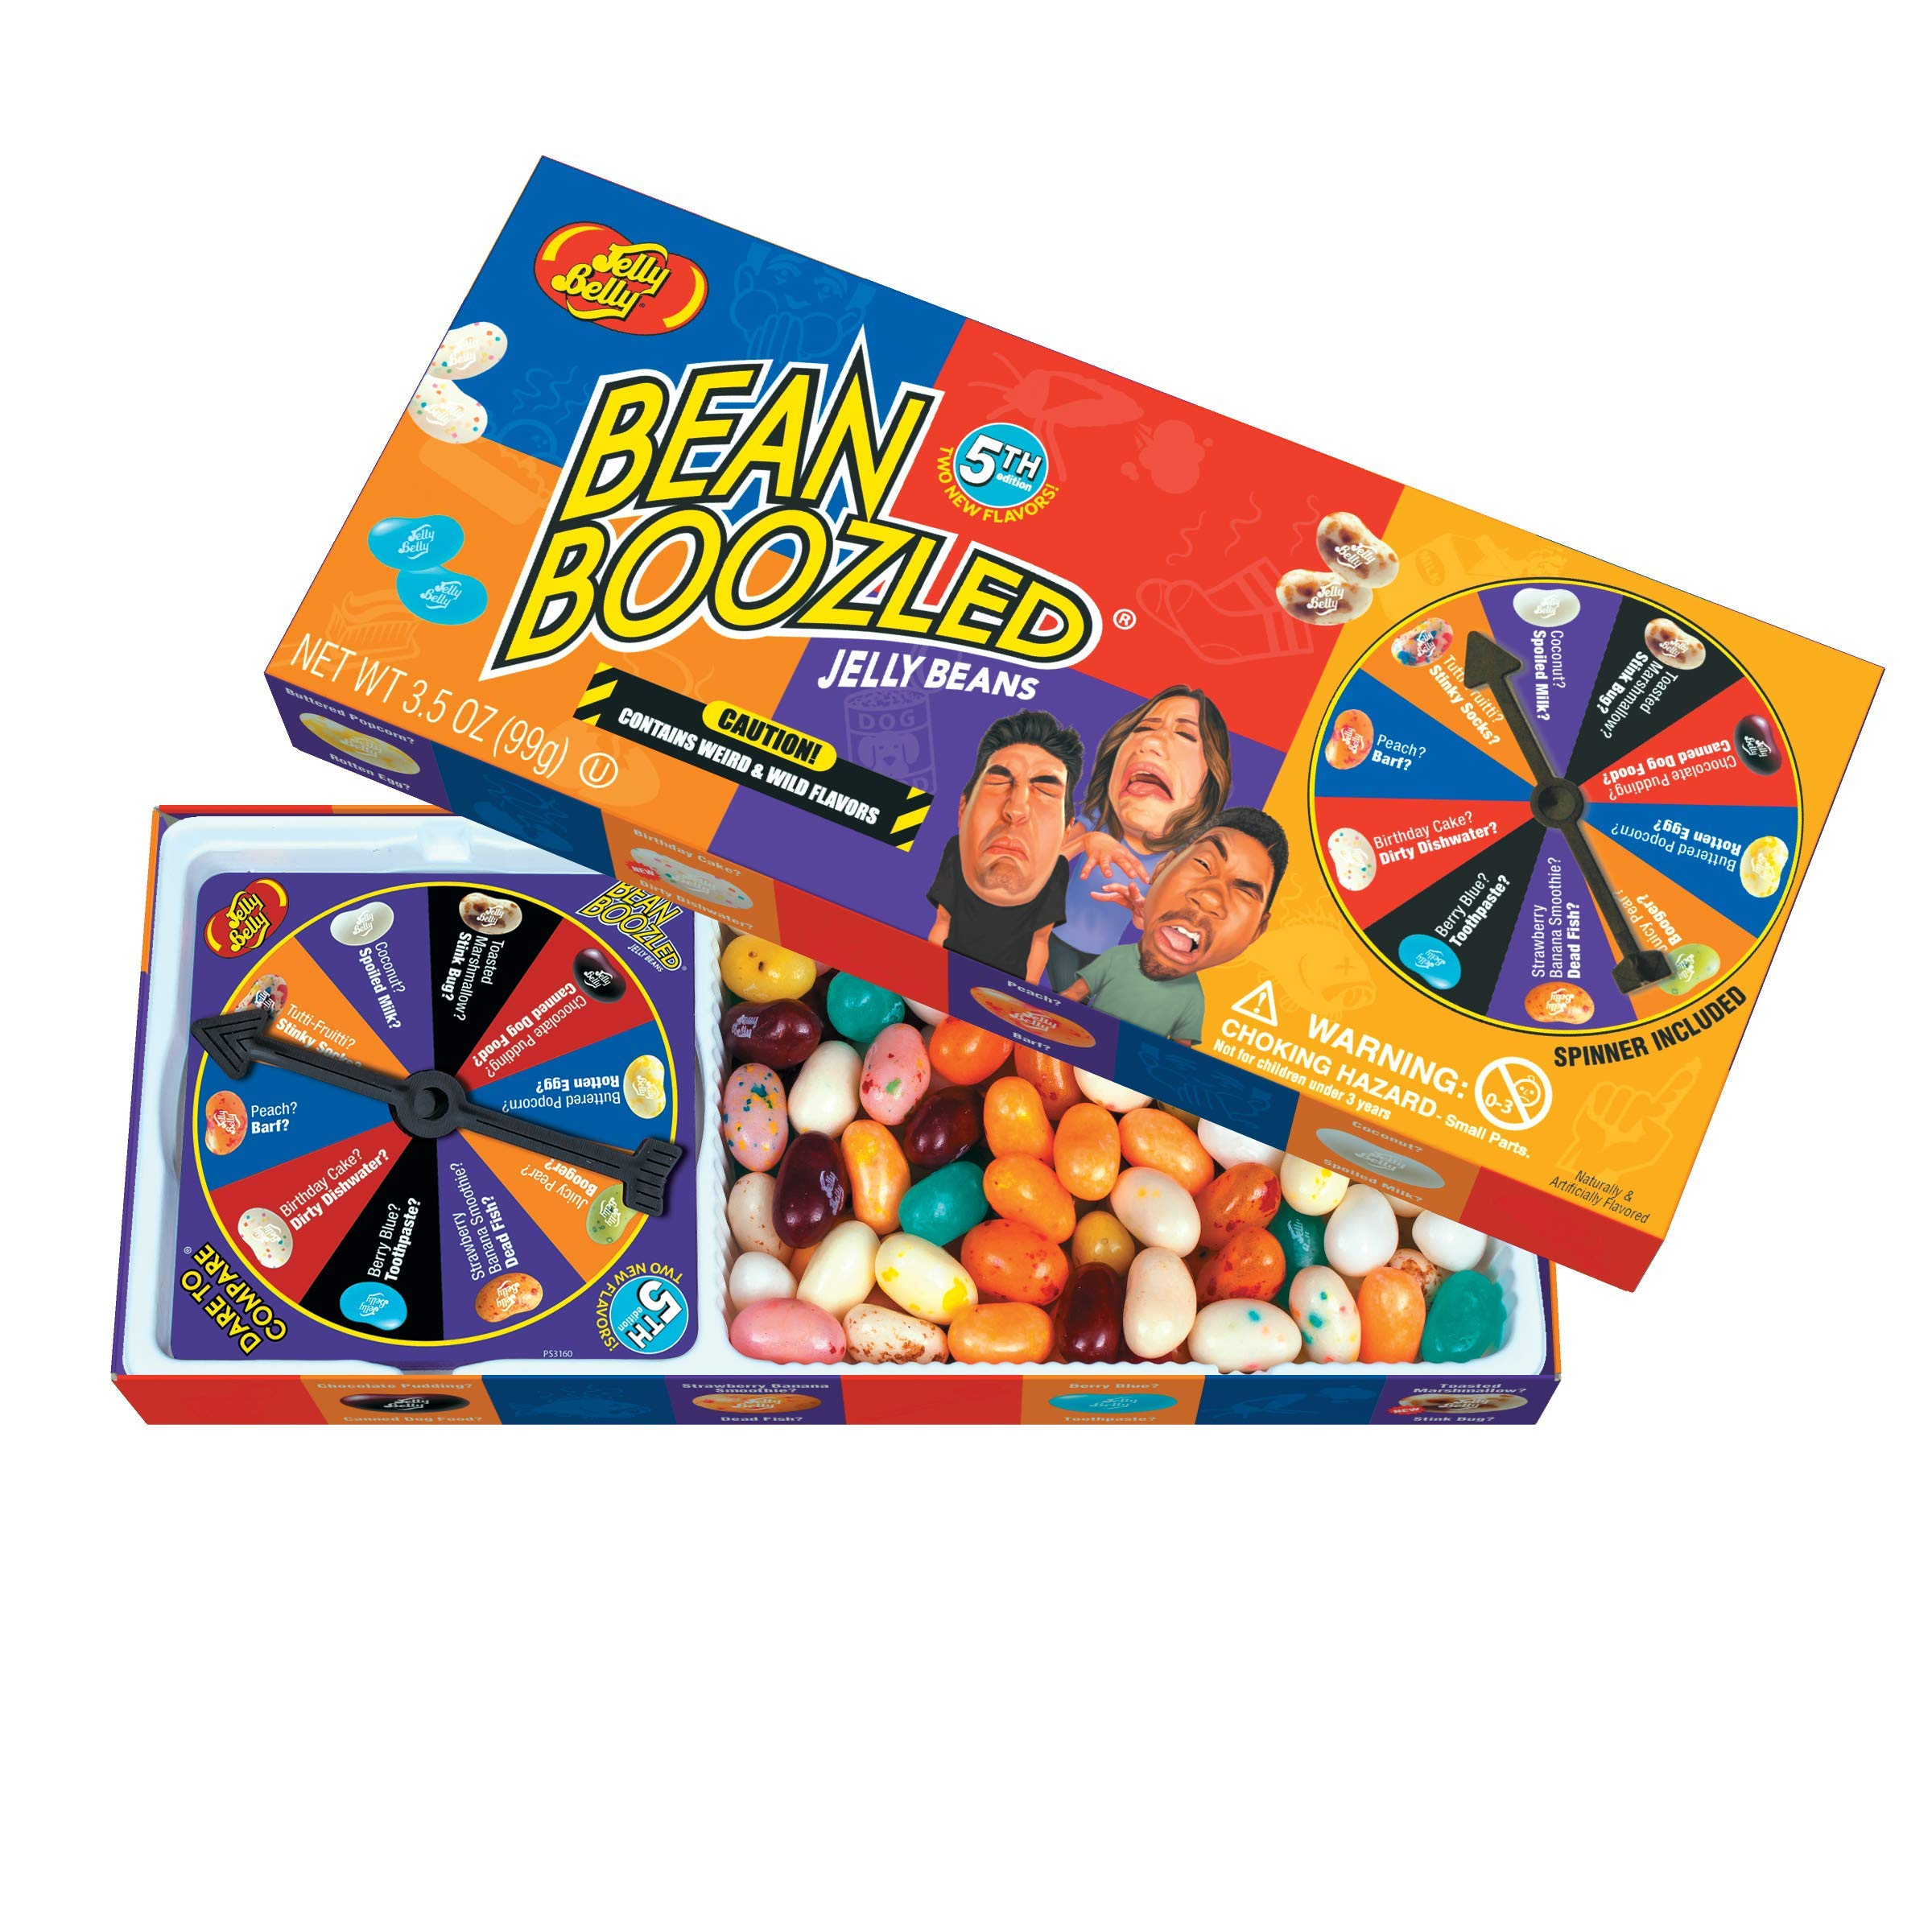 Jelly Belly BeanBoozled Jelly Beans Spinner Gift Box, 5th Edition, 3.5 Ounce (Pack of 1)